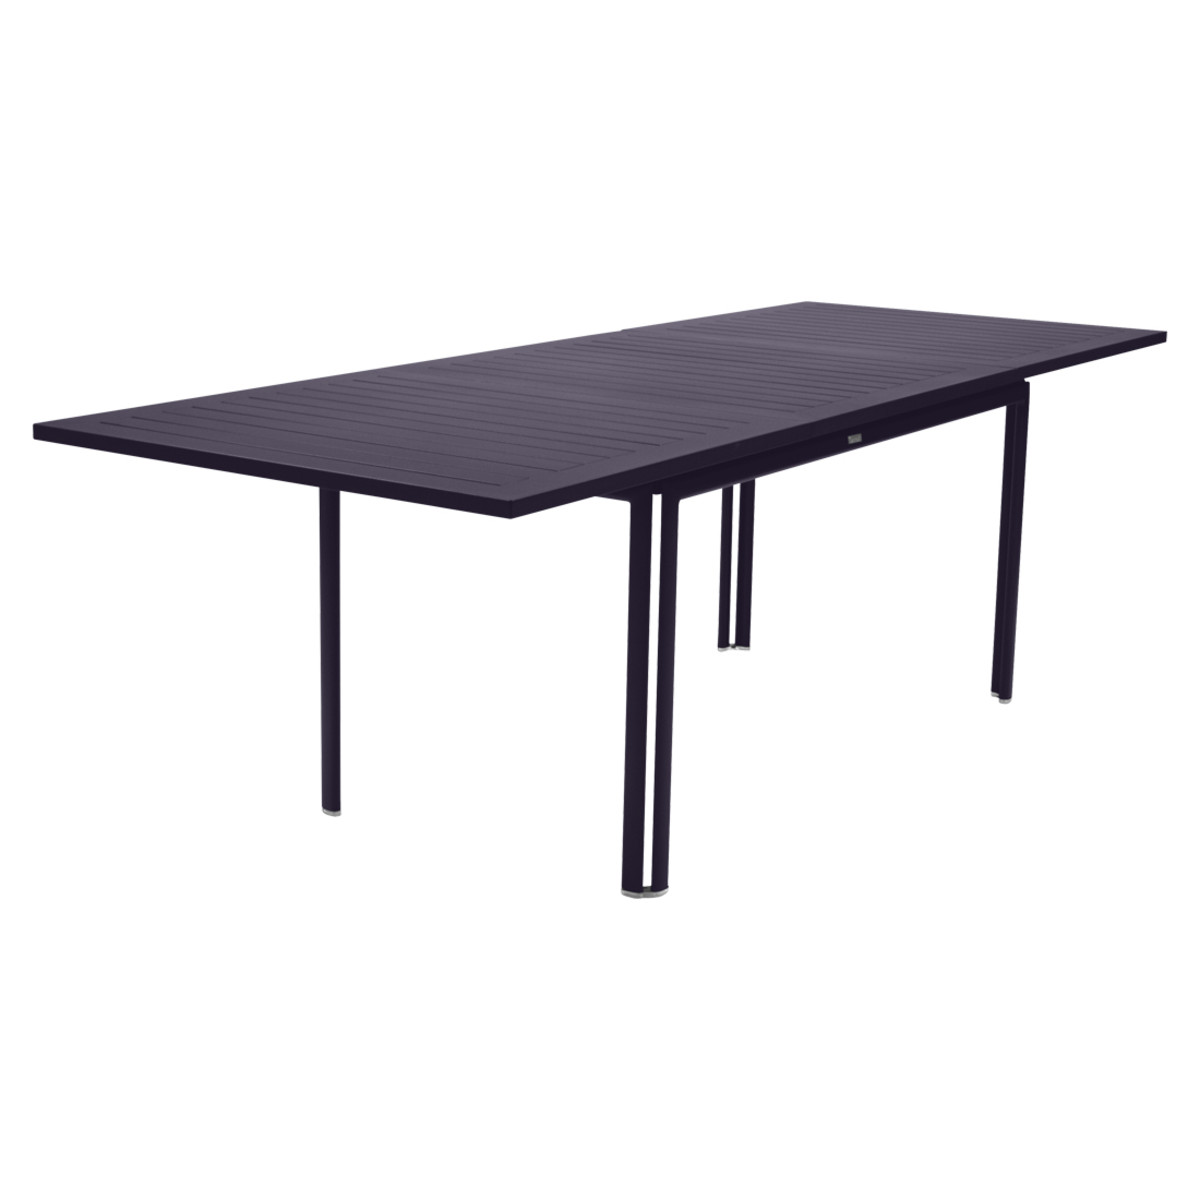 COSTA / TABLE WITH EXTENSION 160/240 X 90 CM